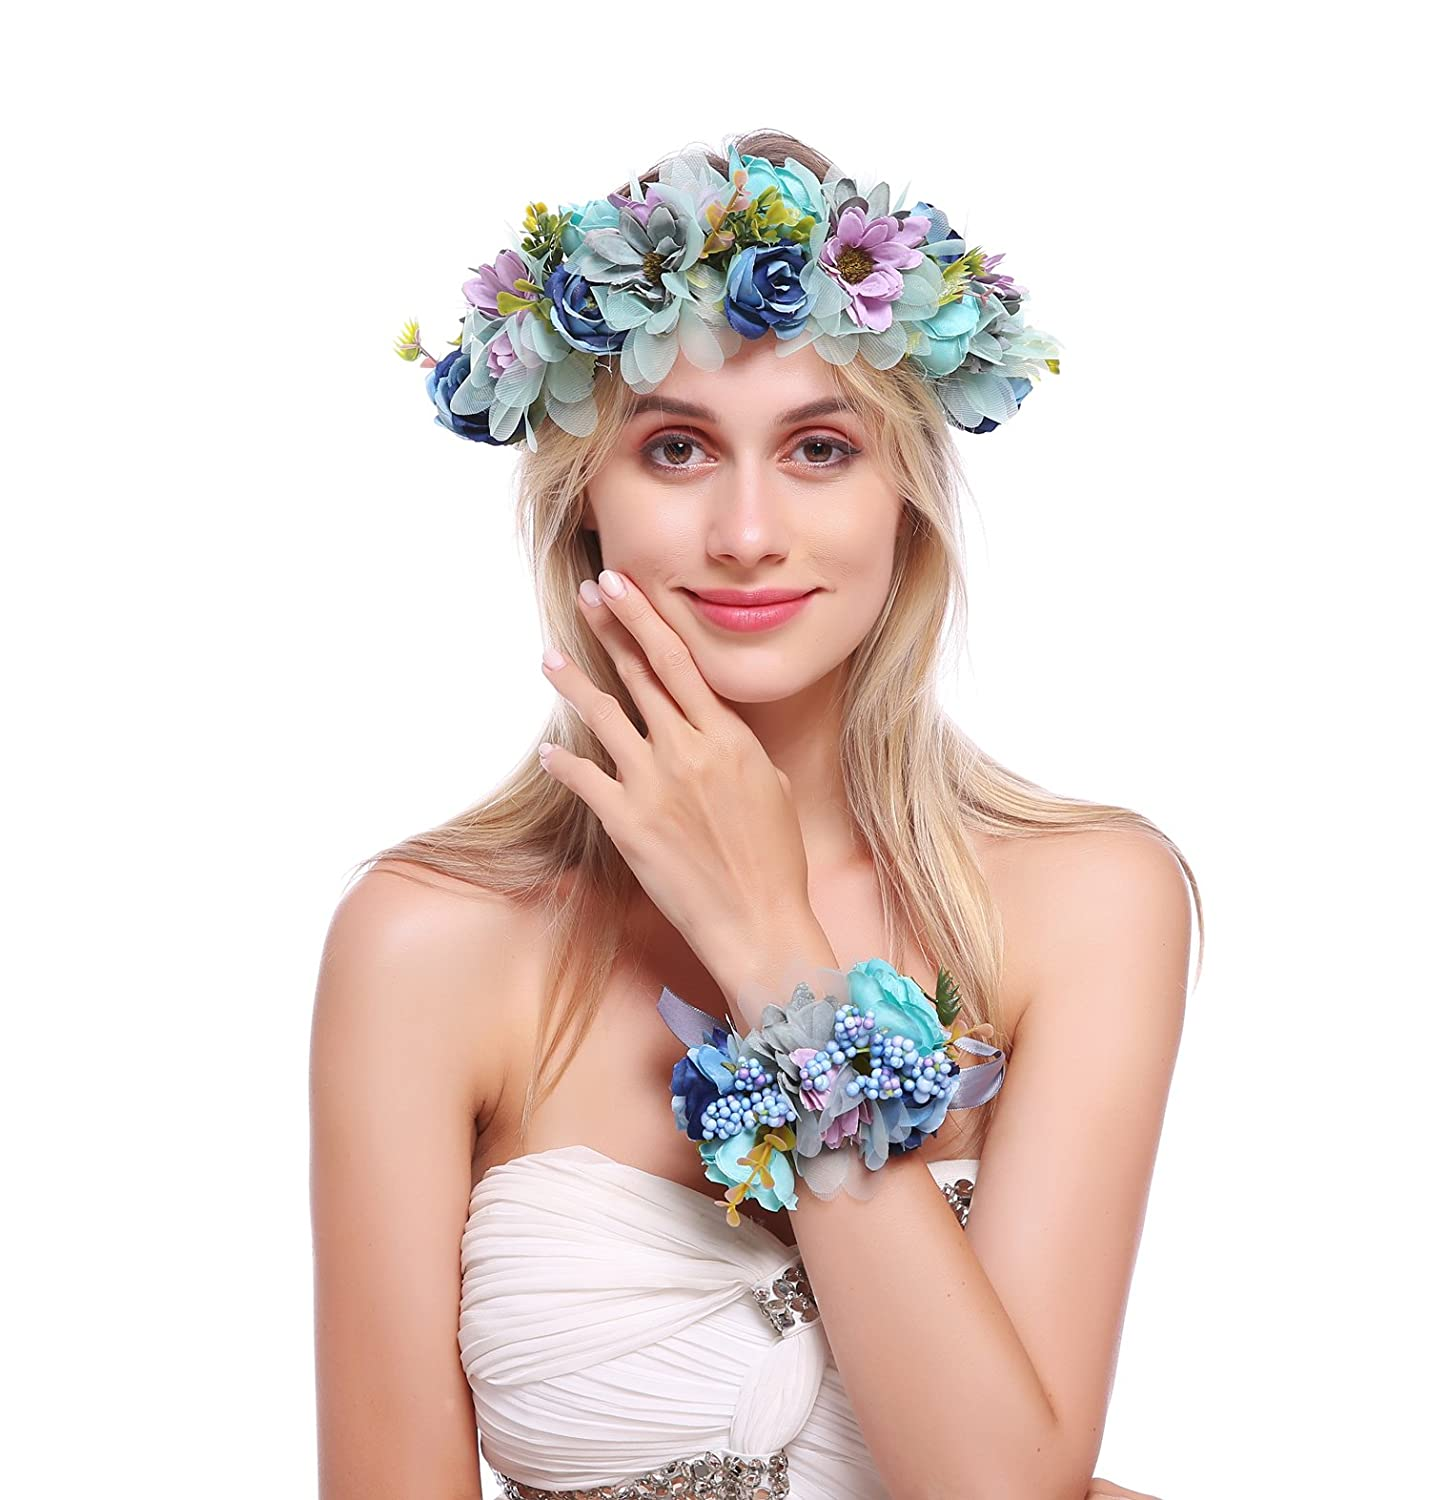 Ddazzling Nature Berries Flower Crown With Floral Wrist Band For